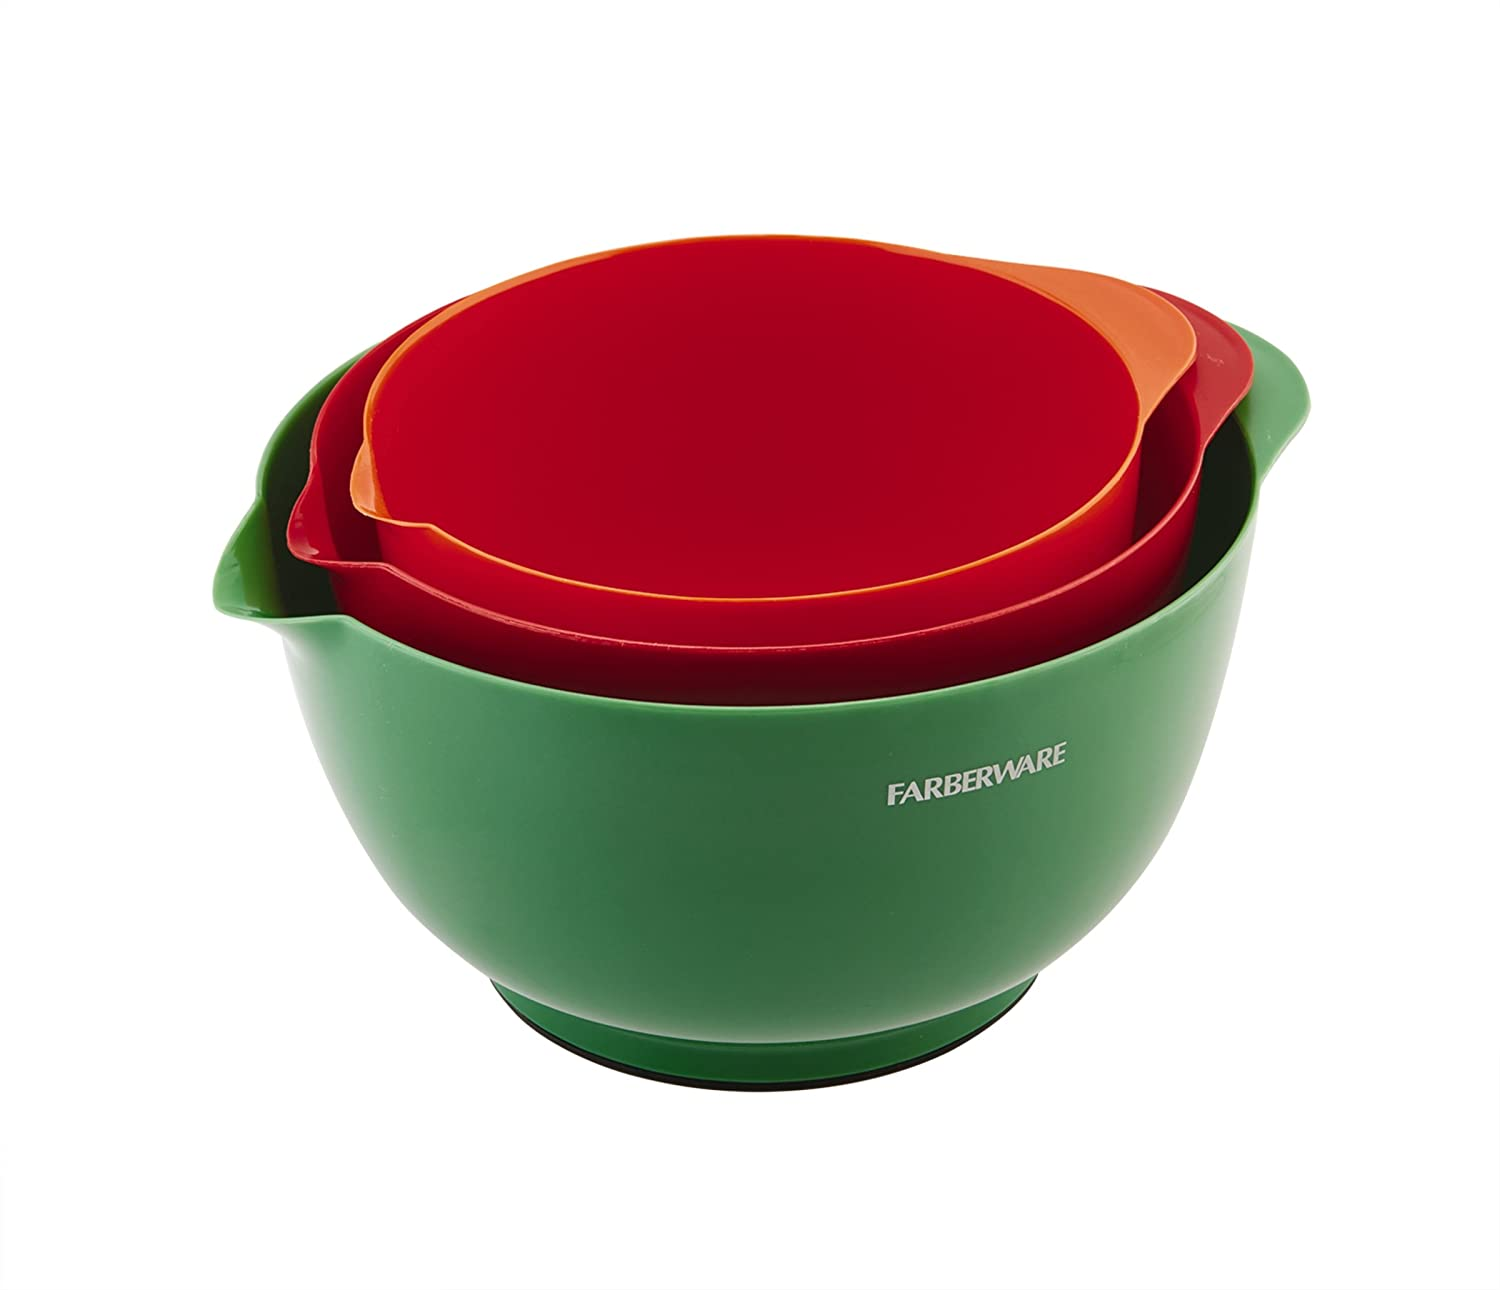 Baking Accs. & Cake Decorating Brand New Set Of 4 Multi Coloured Plastic Mixing Bowls Baking Kitchen Cooking Keep You Fit All The Time